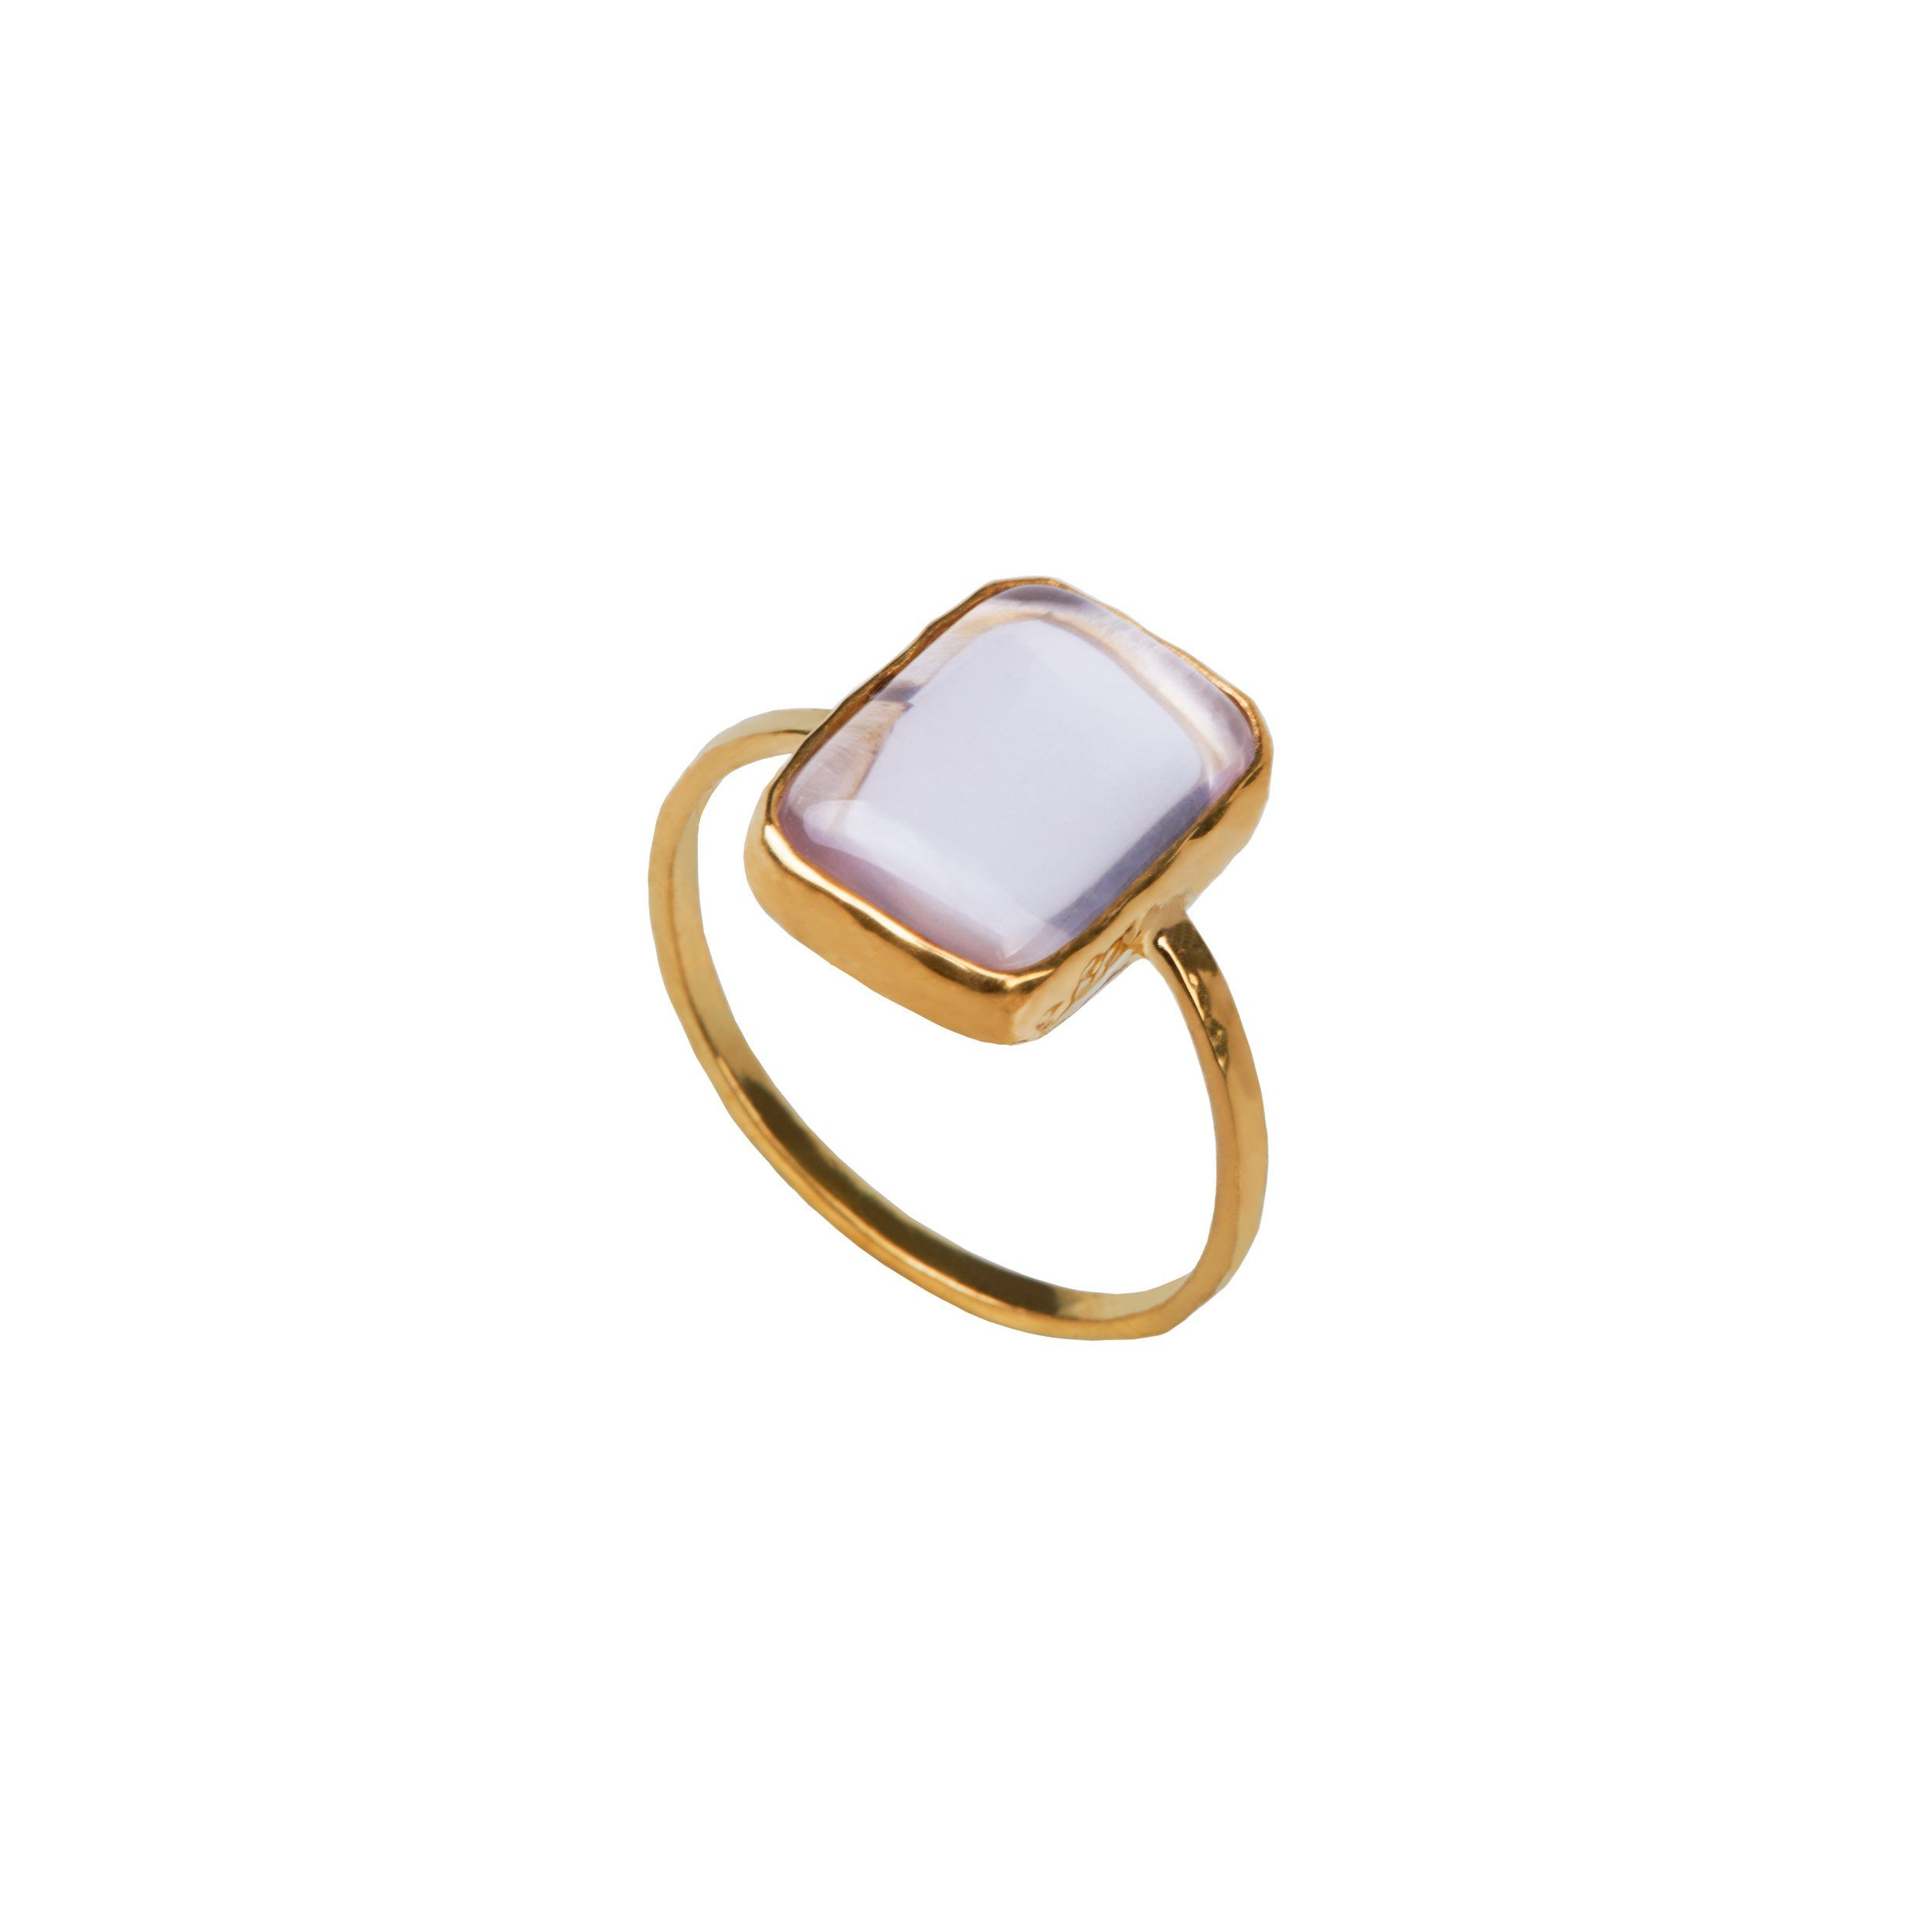 Rose quartz ring silver and gold plated from Santai.no